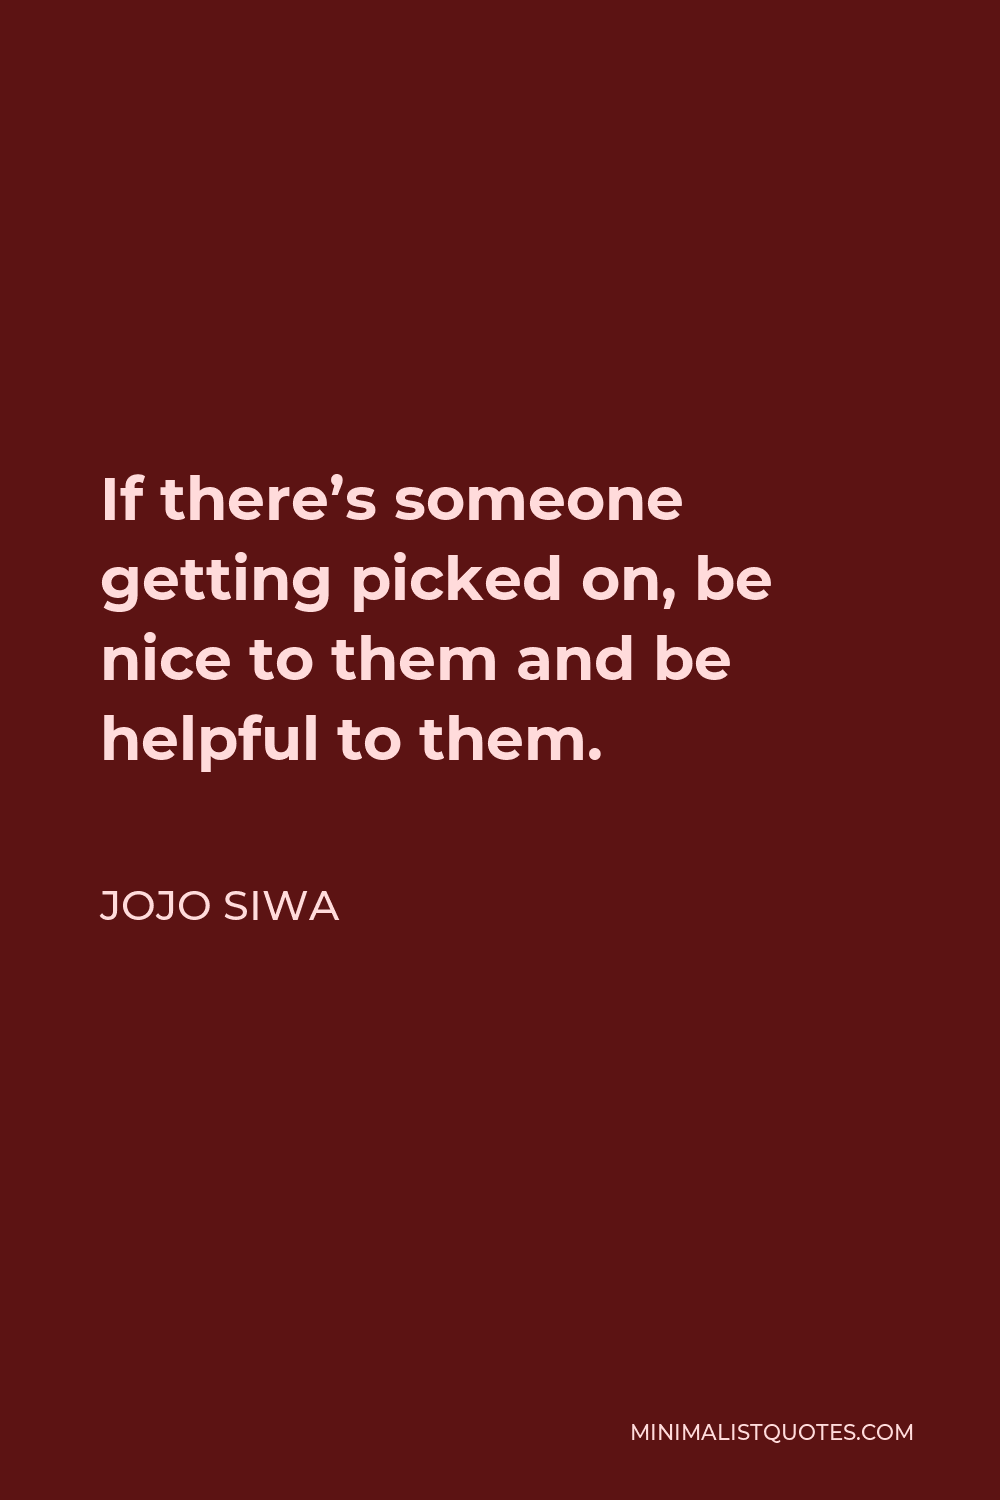 JoJo Siwa Quote - If there's someone getting picked on, be nice to them and be helpful to them.